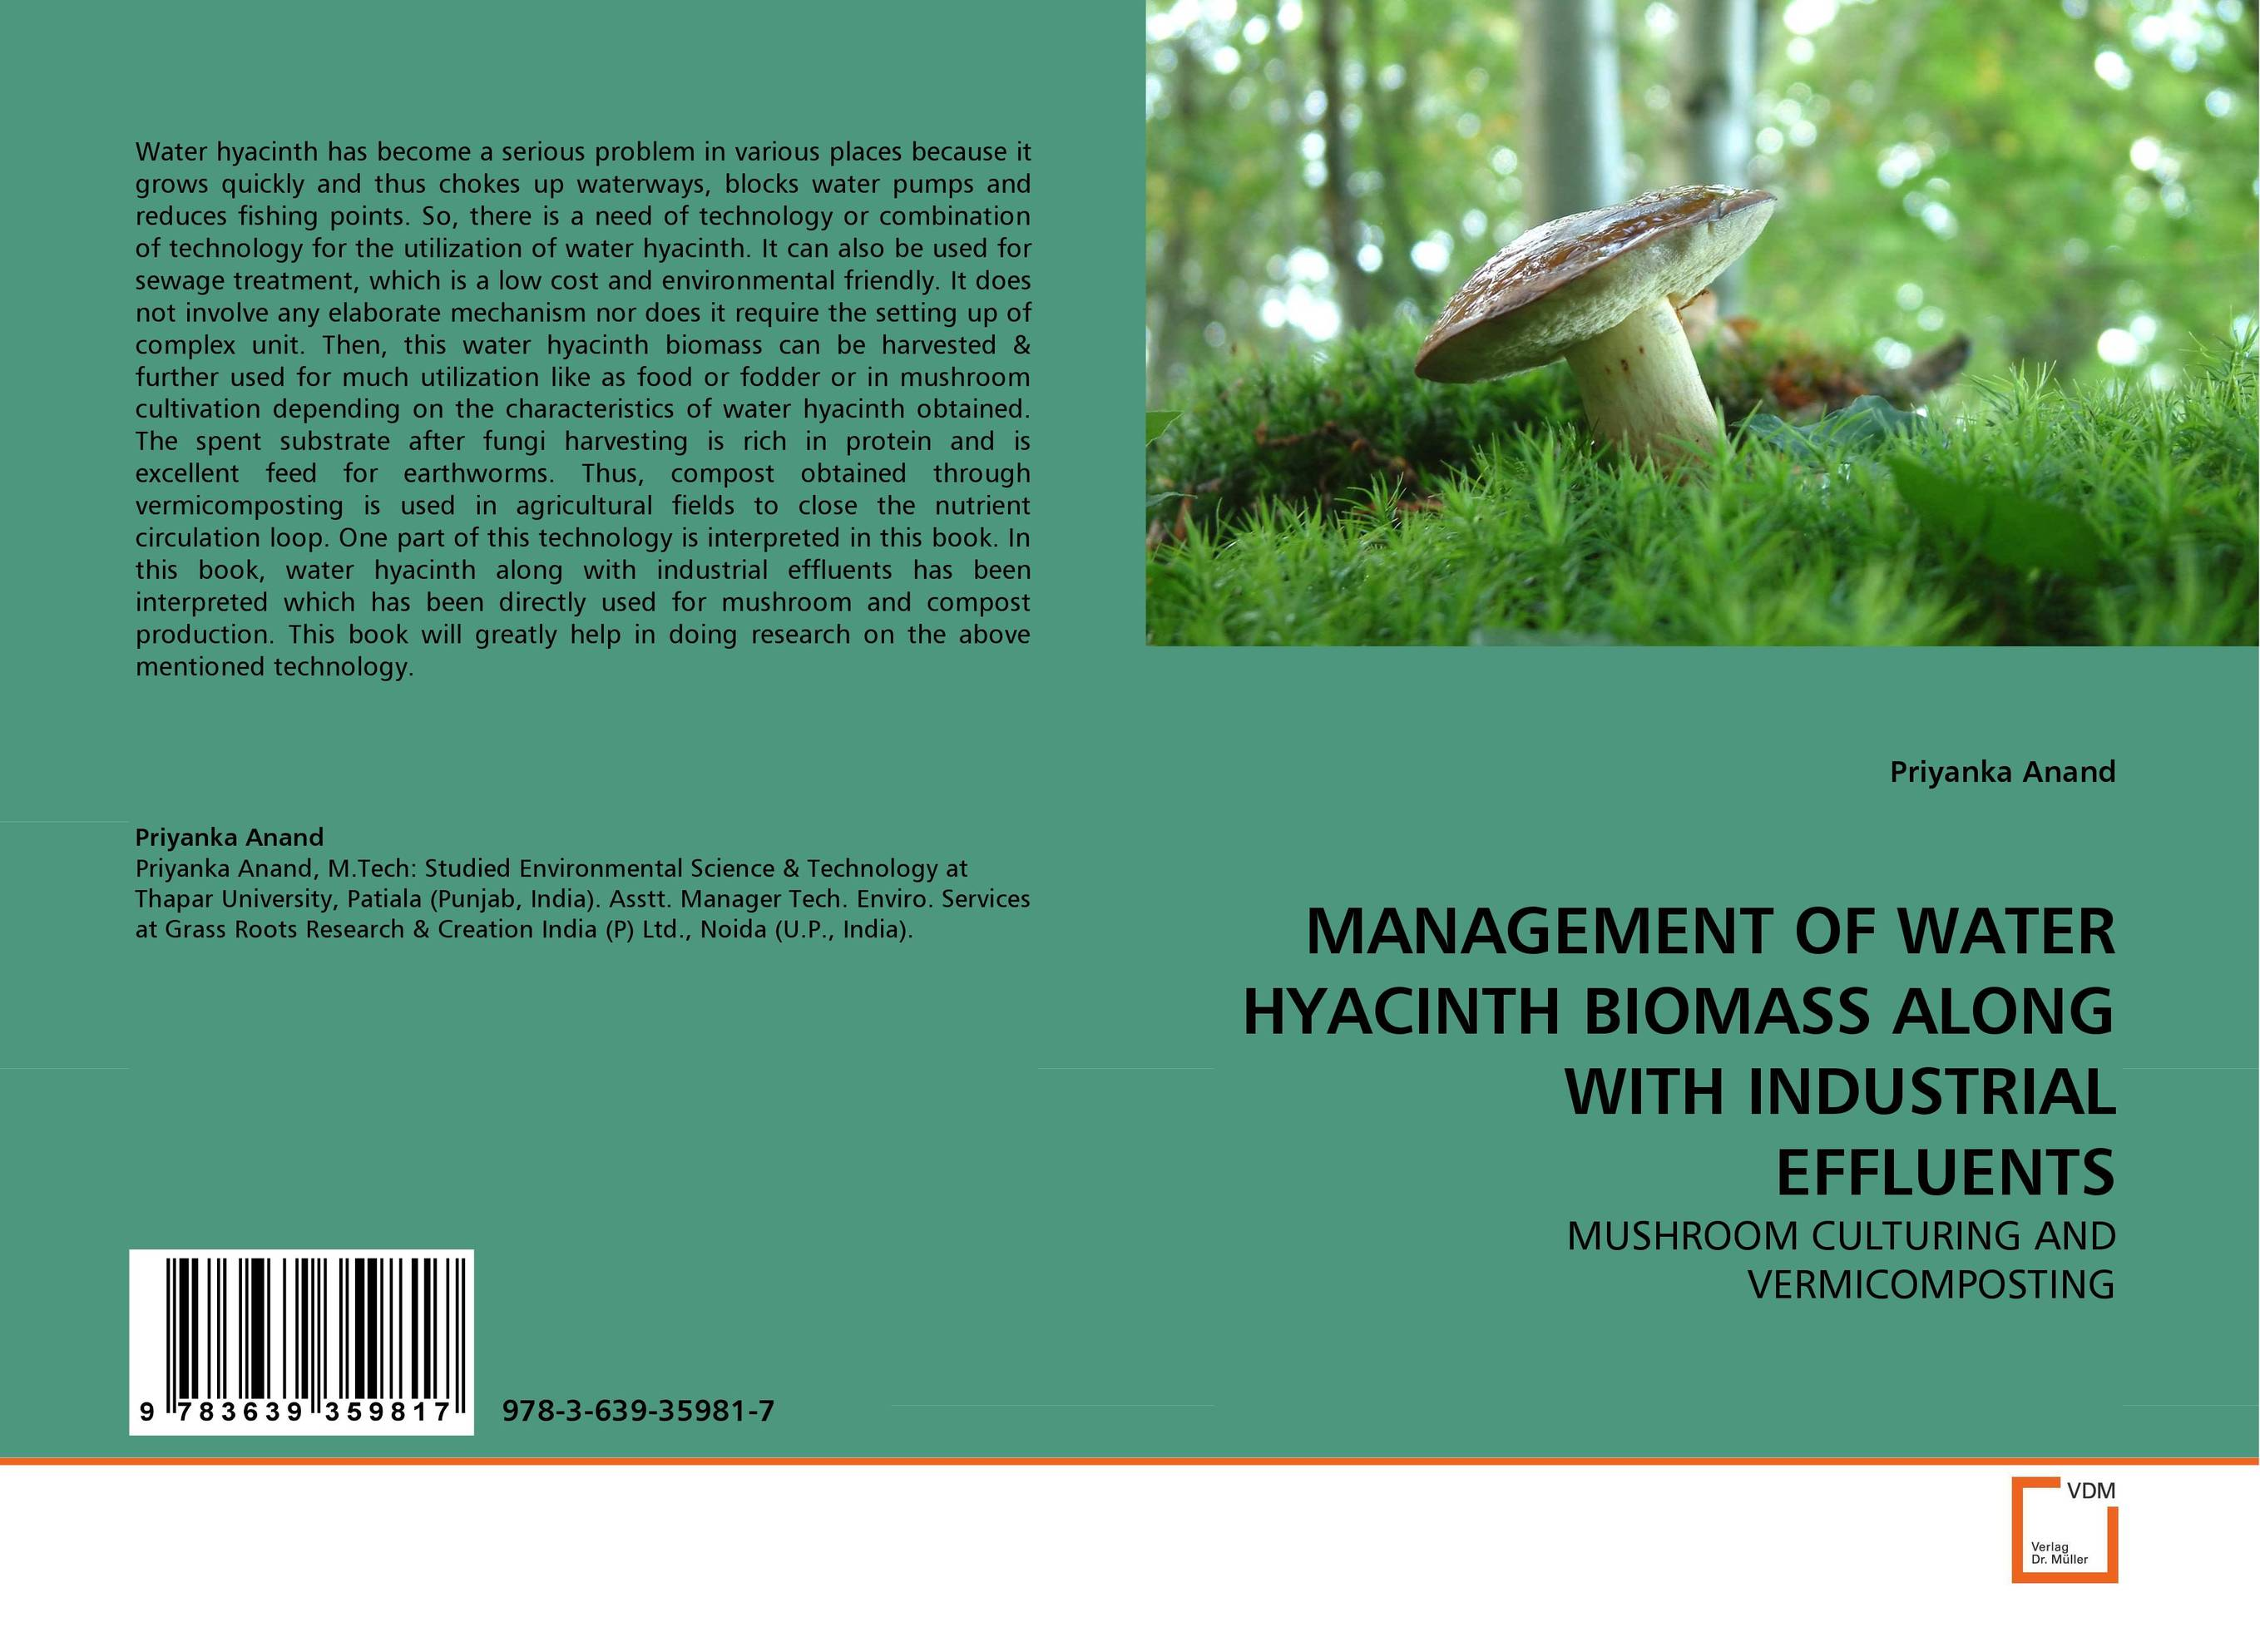 MANAGEMENT OF WATER HYACINTH BIOMASS ALONG WITH INDUSTRIAL EFFLUENTS an evaluation of water hyacinth meal as a feedstuff for pullet chicks